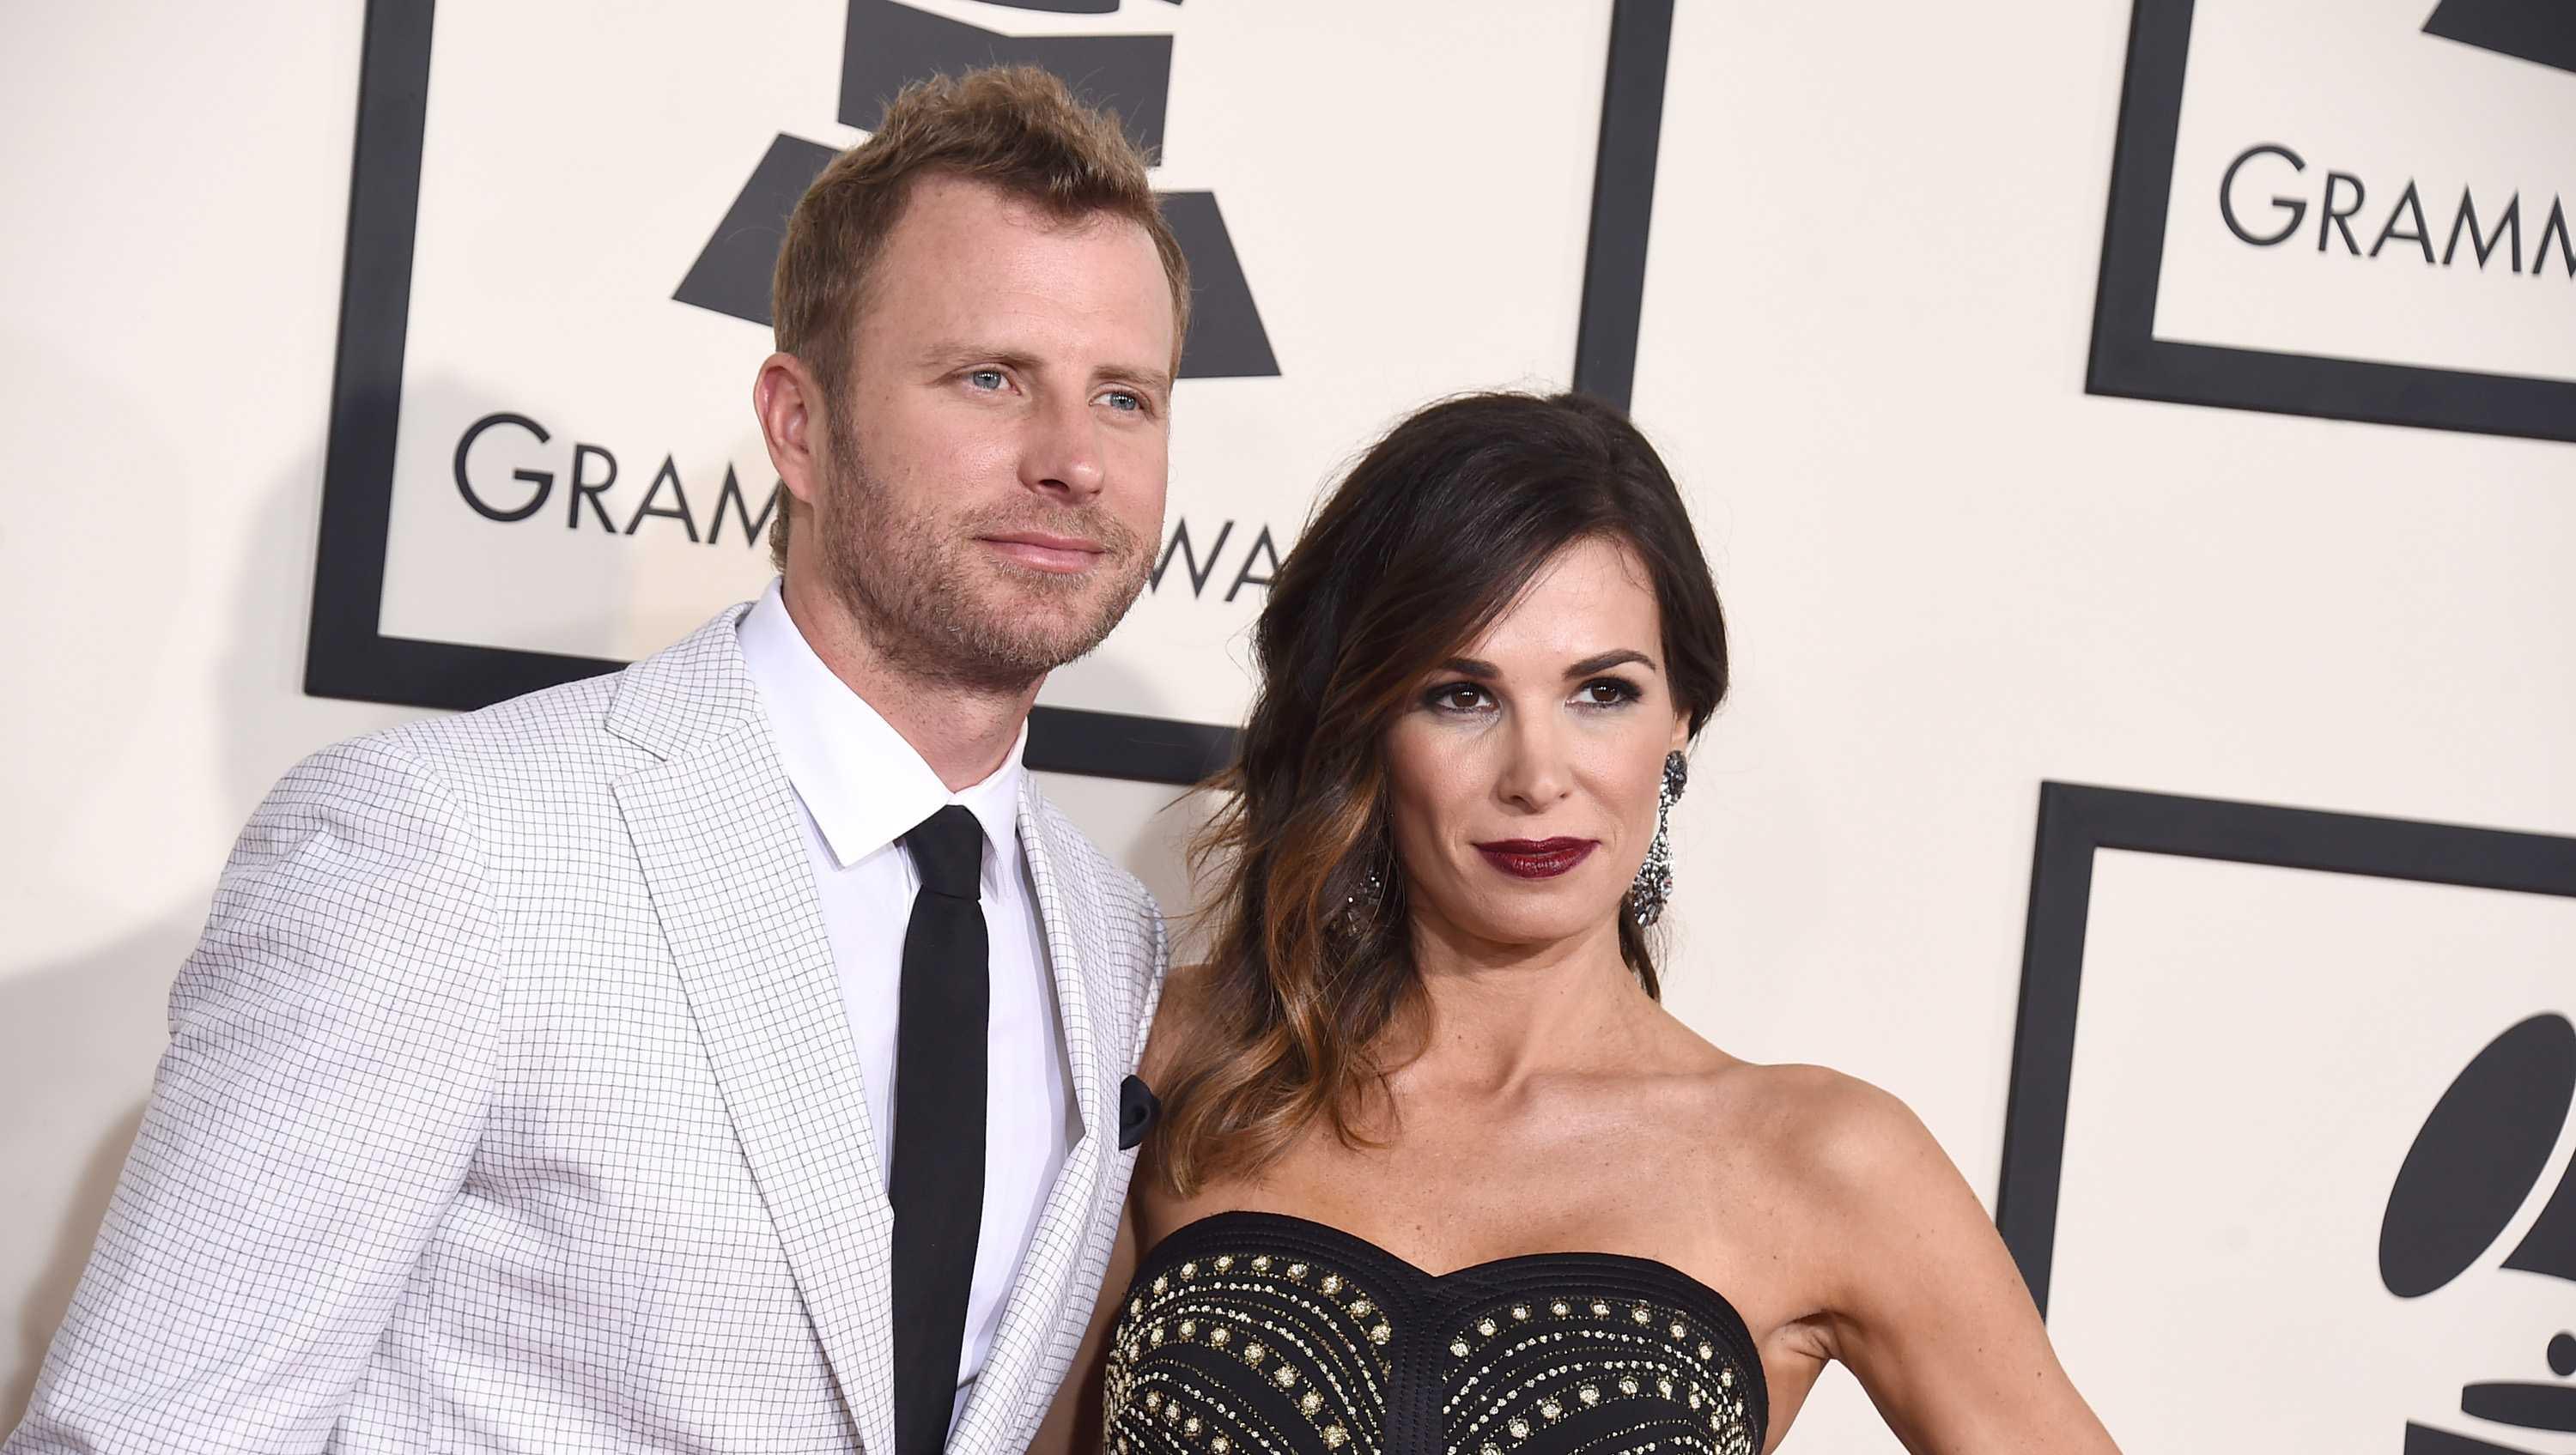 Dierks Bentley, left, and Cassidy Black Bentley